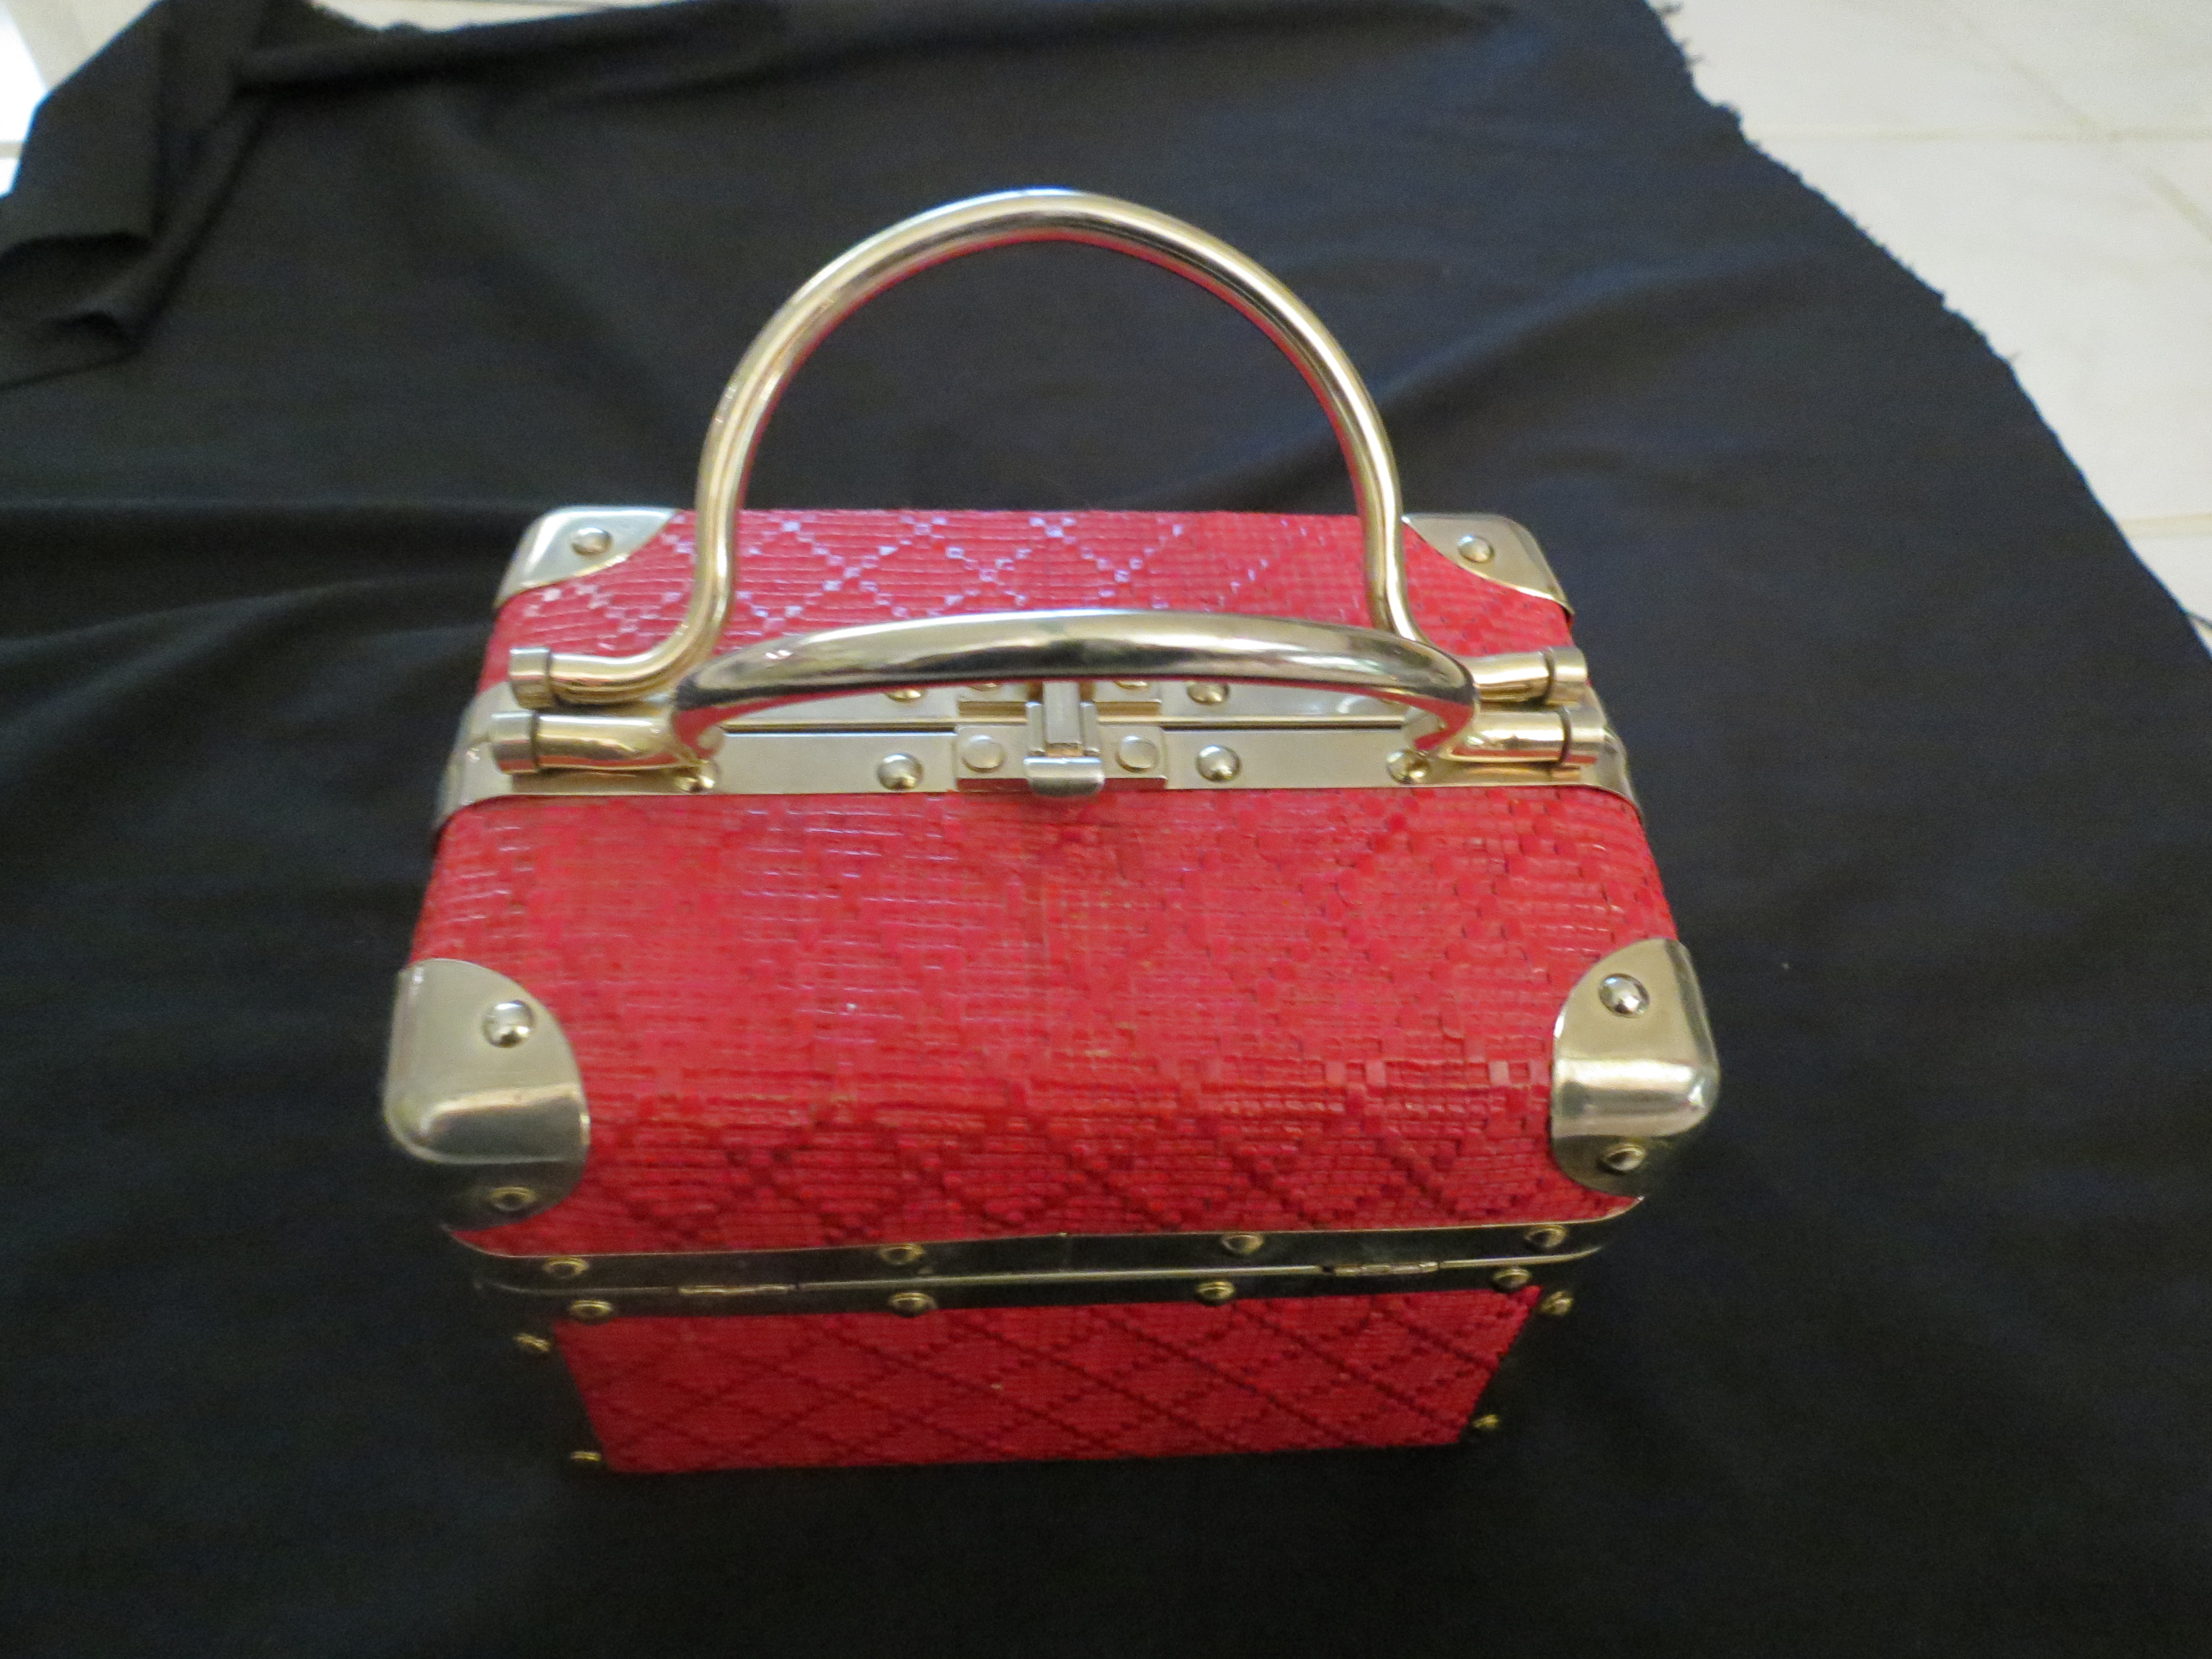 TRUE VINTAGE 1960'S - '70'S BOX BAG WITH LUGGAGE - STYLE HARDWARE